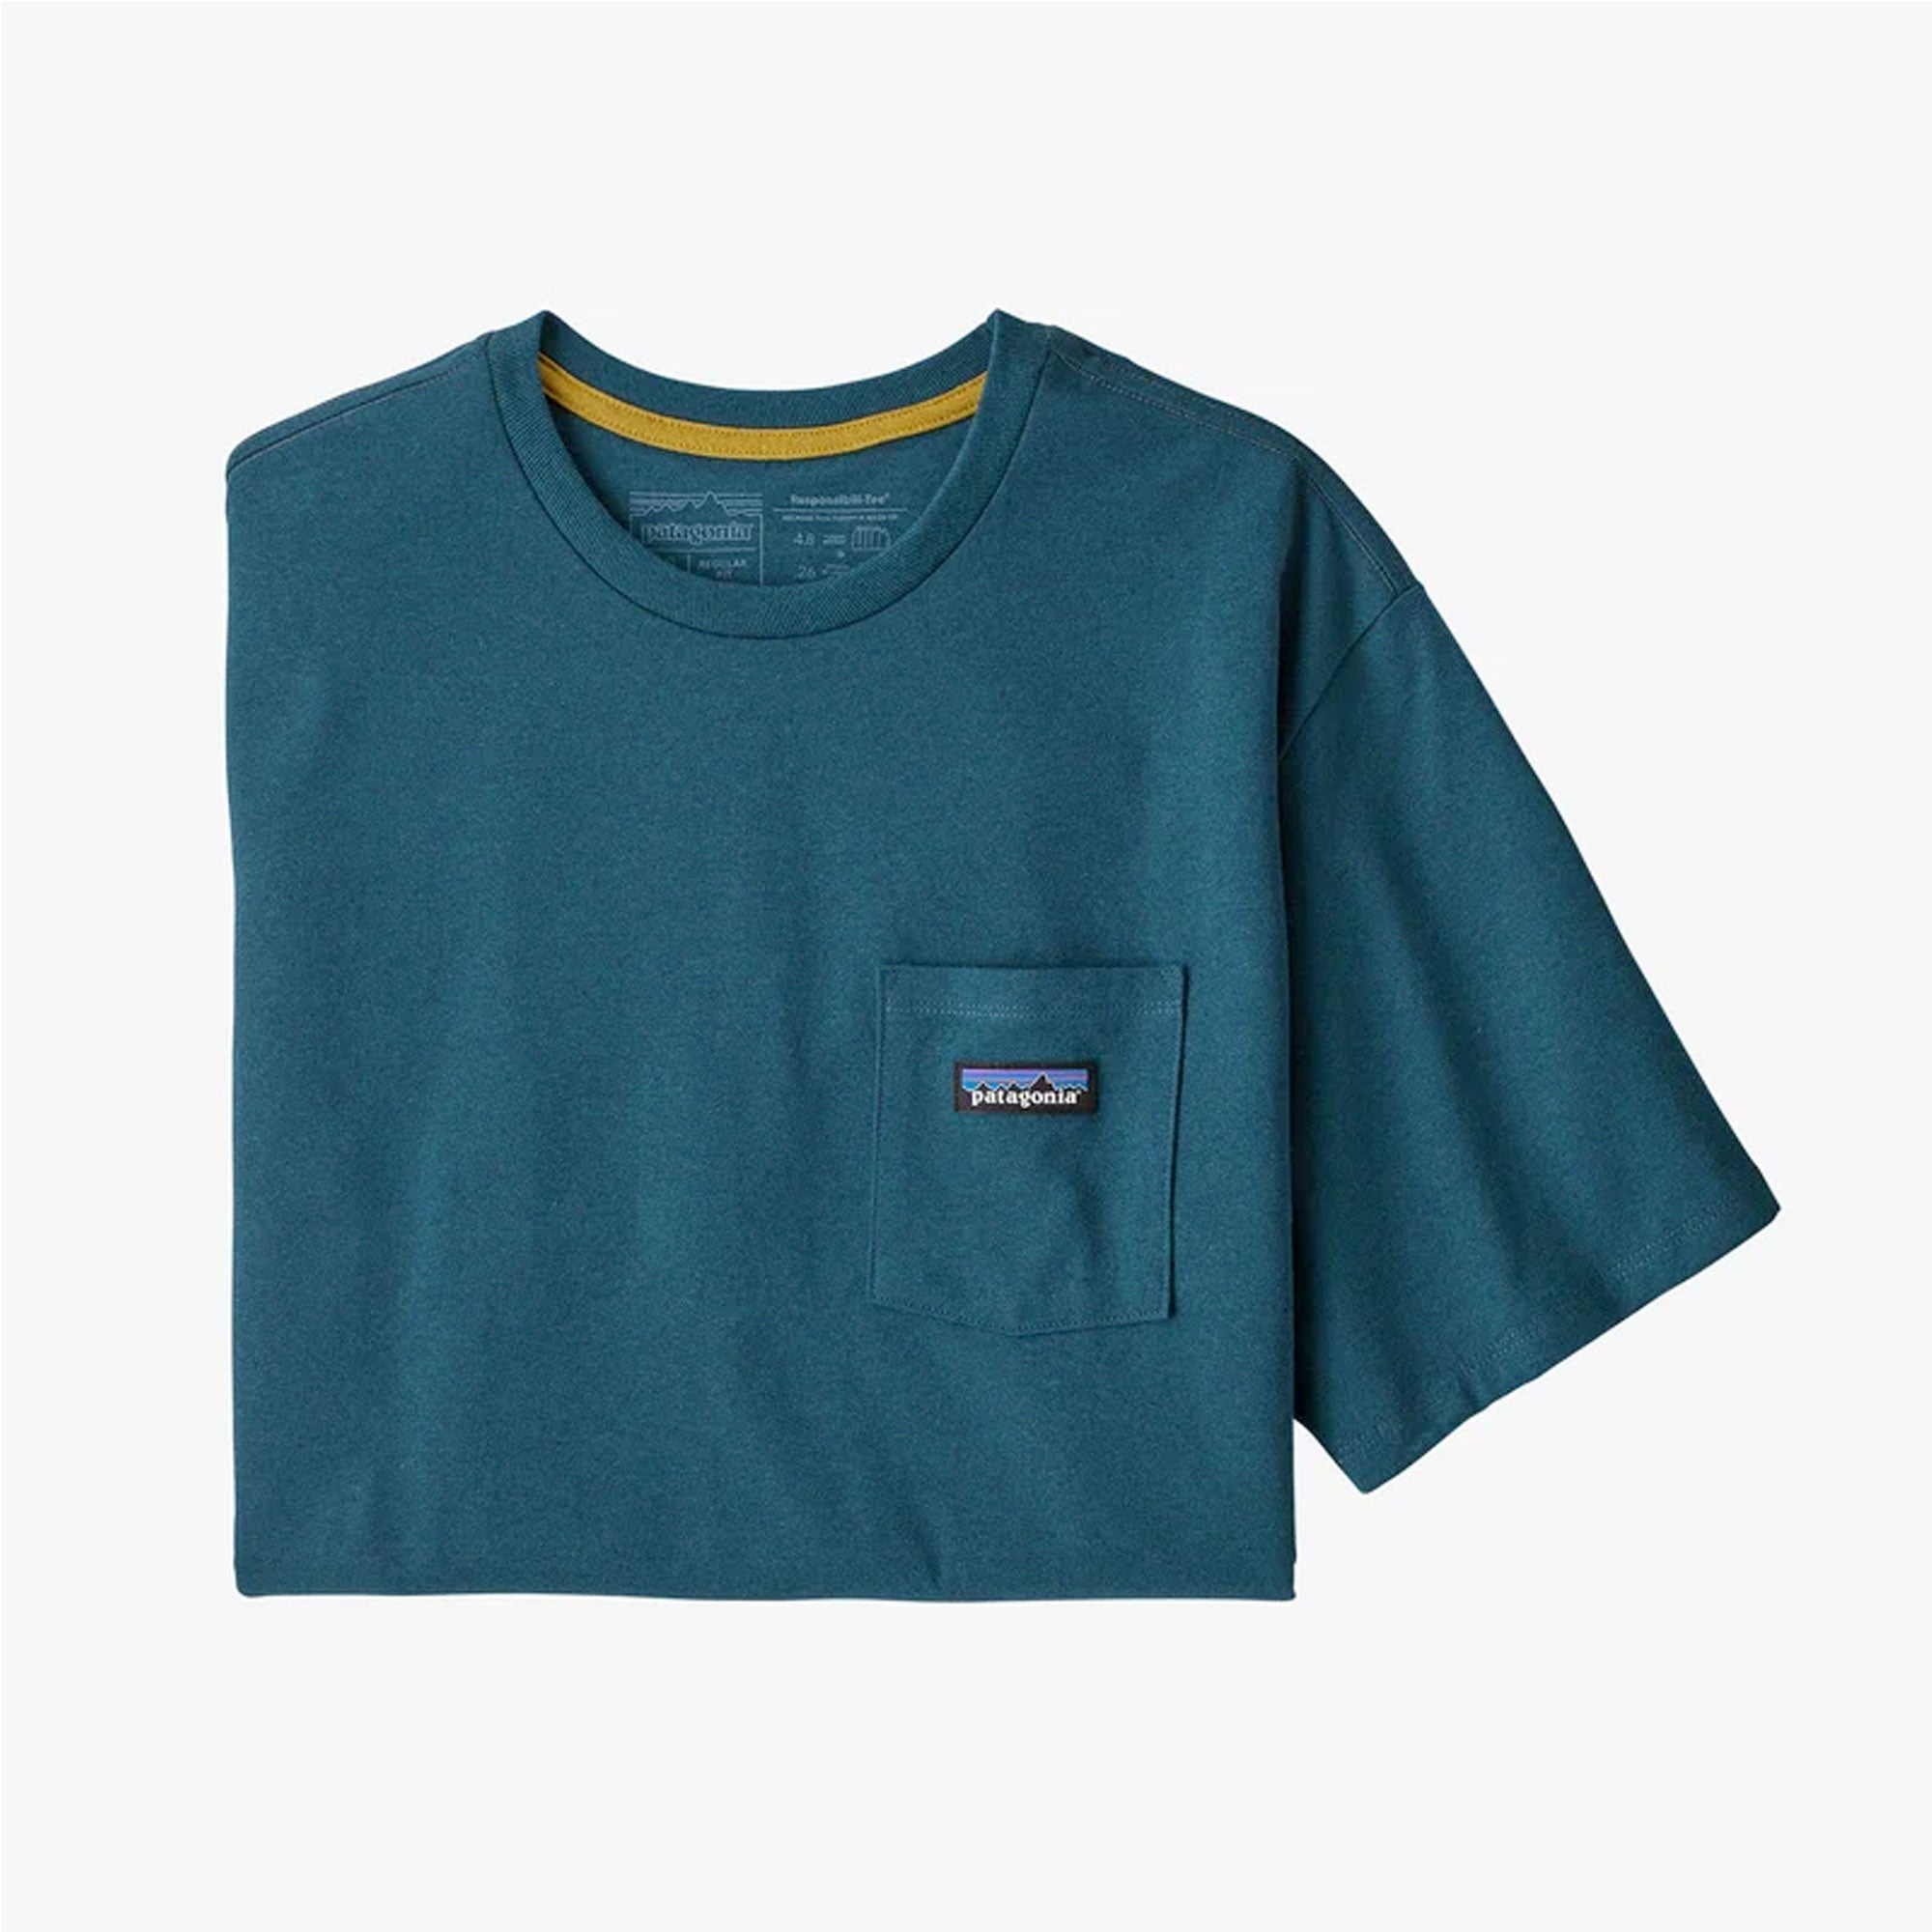 Patagonia P-6 Label Responsibili-Tee Men's S/S Pocket T-Shirt